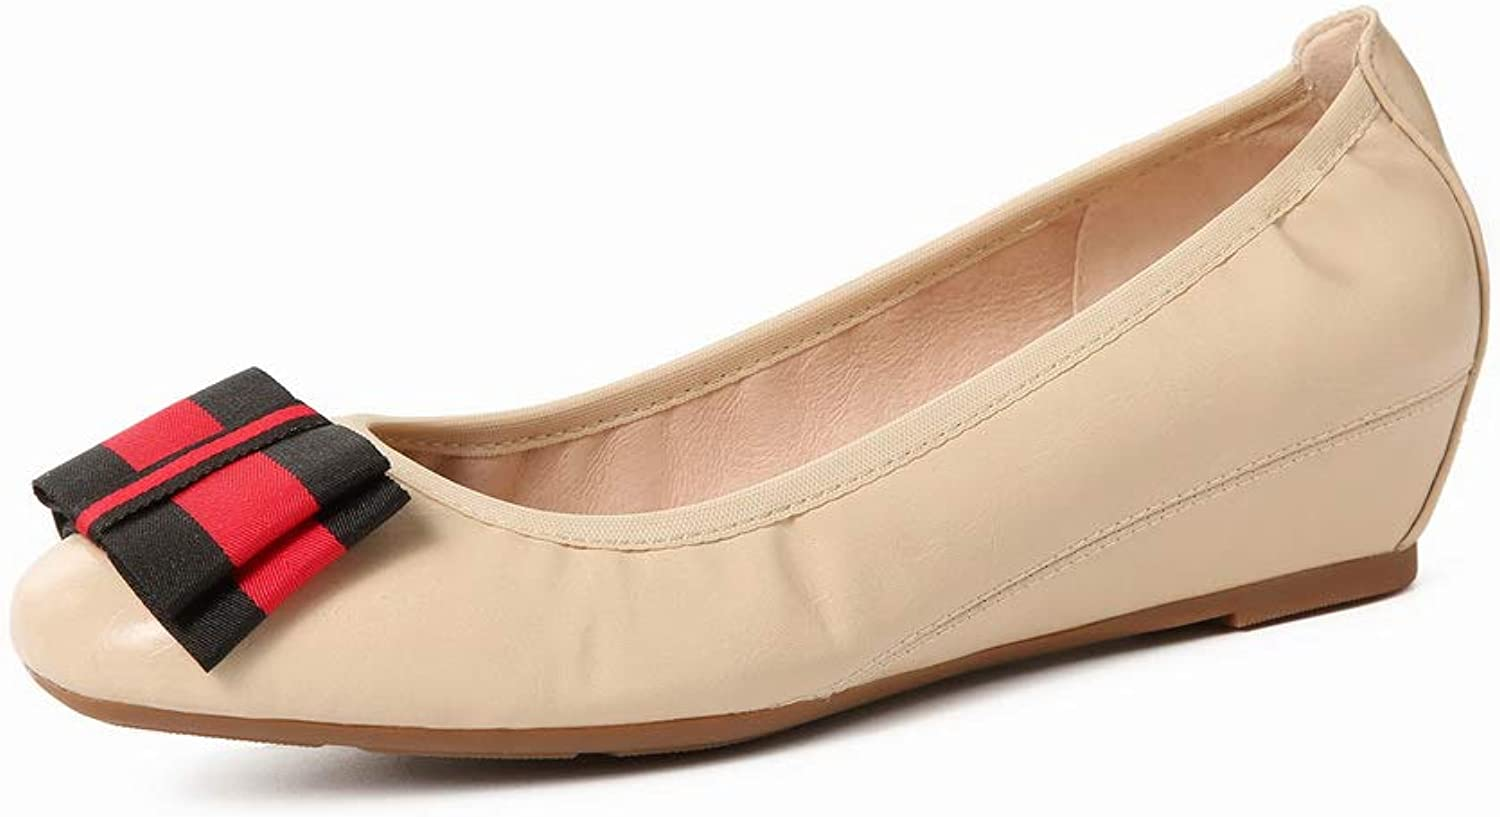 AdeeSu Womens Stripes Comfort Charms Leather Pumps shoes SDC05964